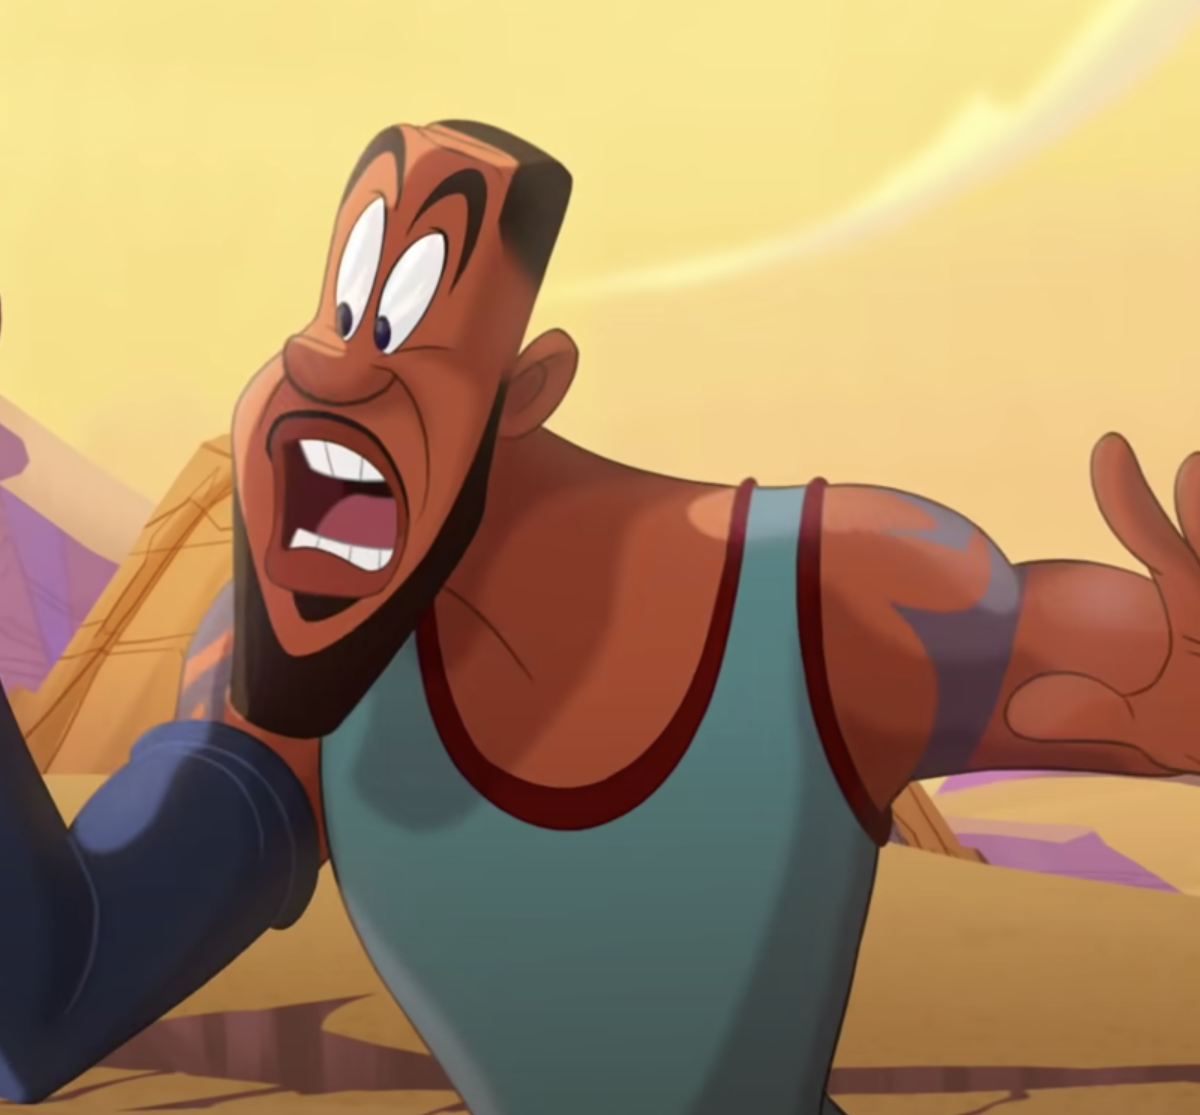 The 10 Best Easter Eggs in 'Space Jam: A New Legacy'